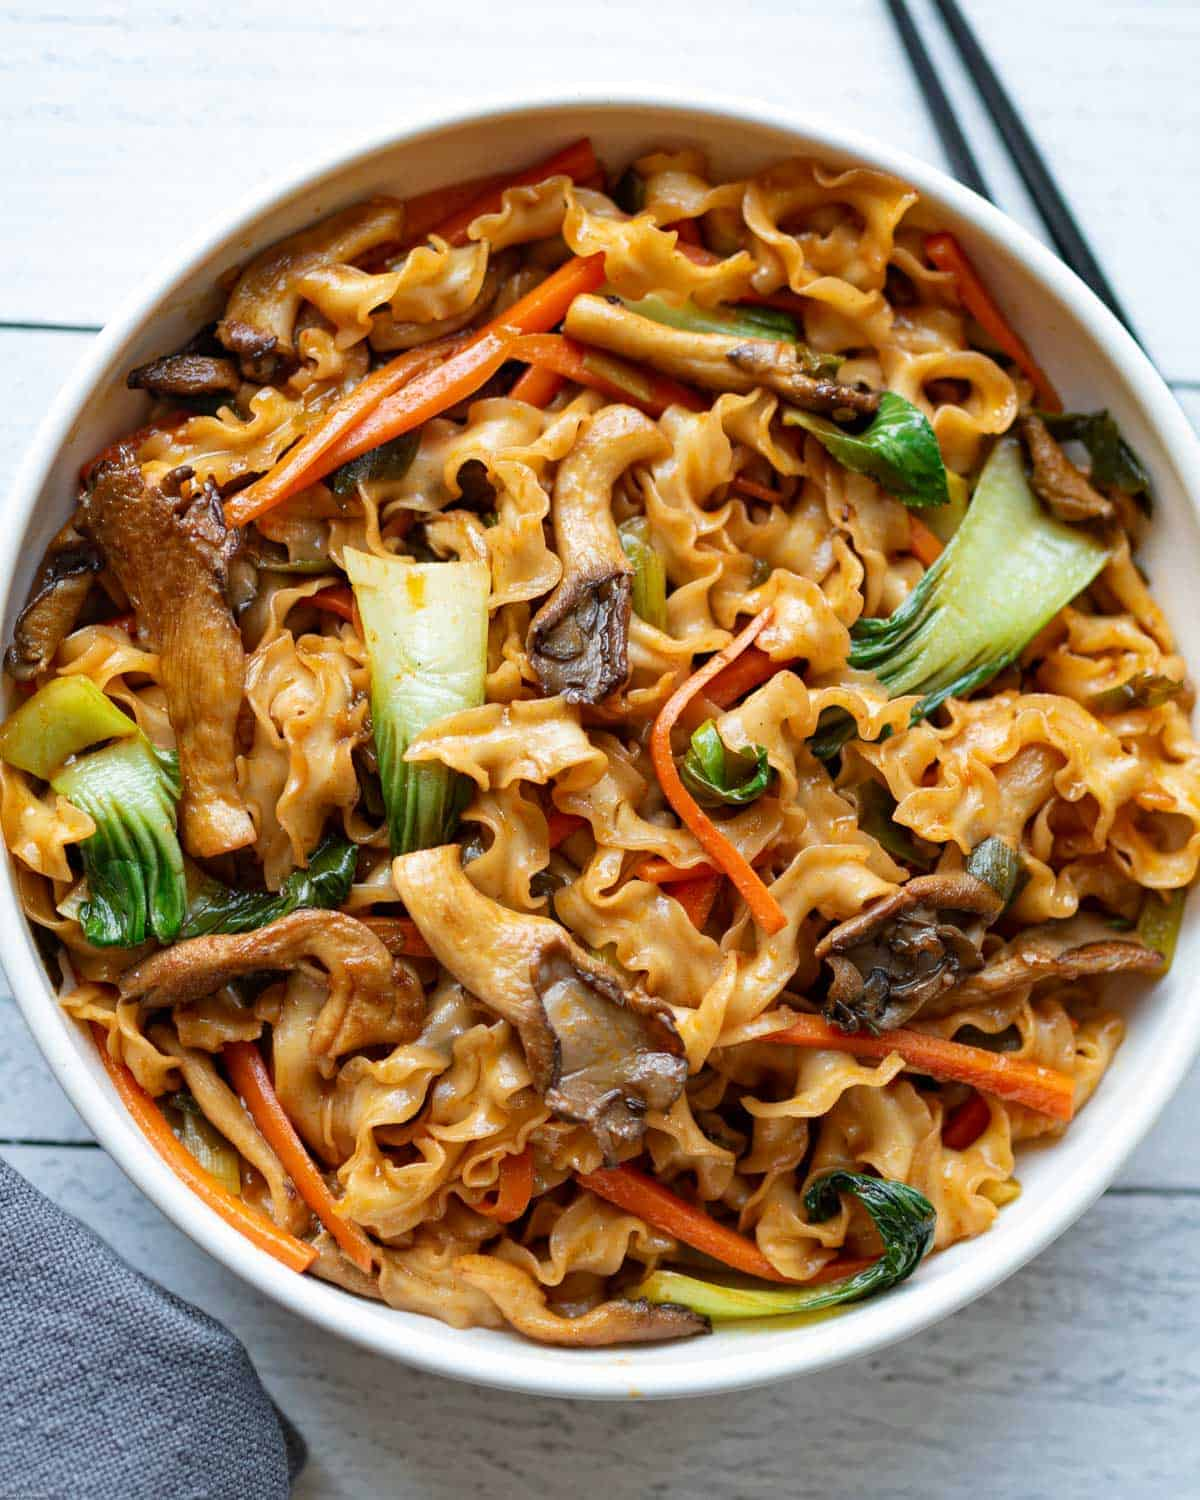 Guanmiao noodles, mushrooms, baby bok choy, carrots, green onions, and an Asian-inspired sauce. Mixed in a bowl for serving.